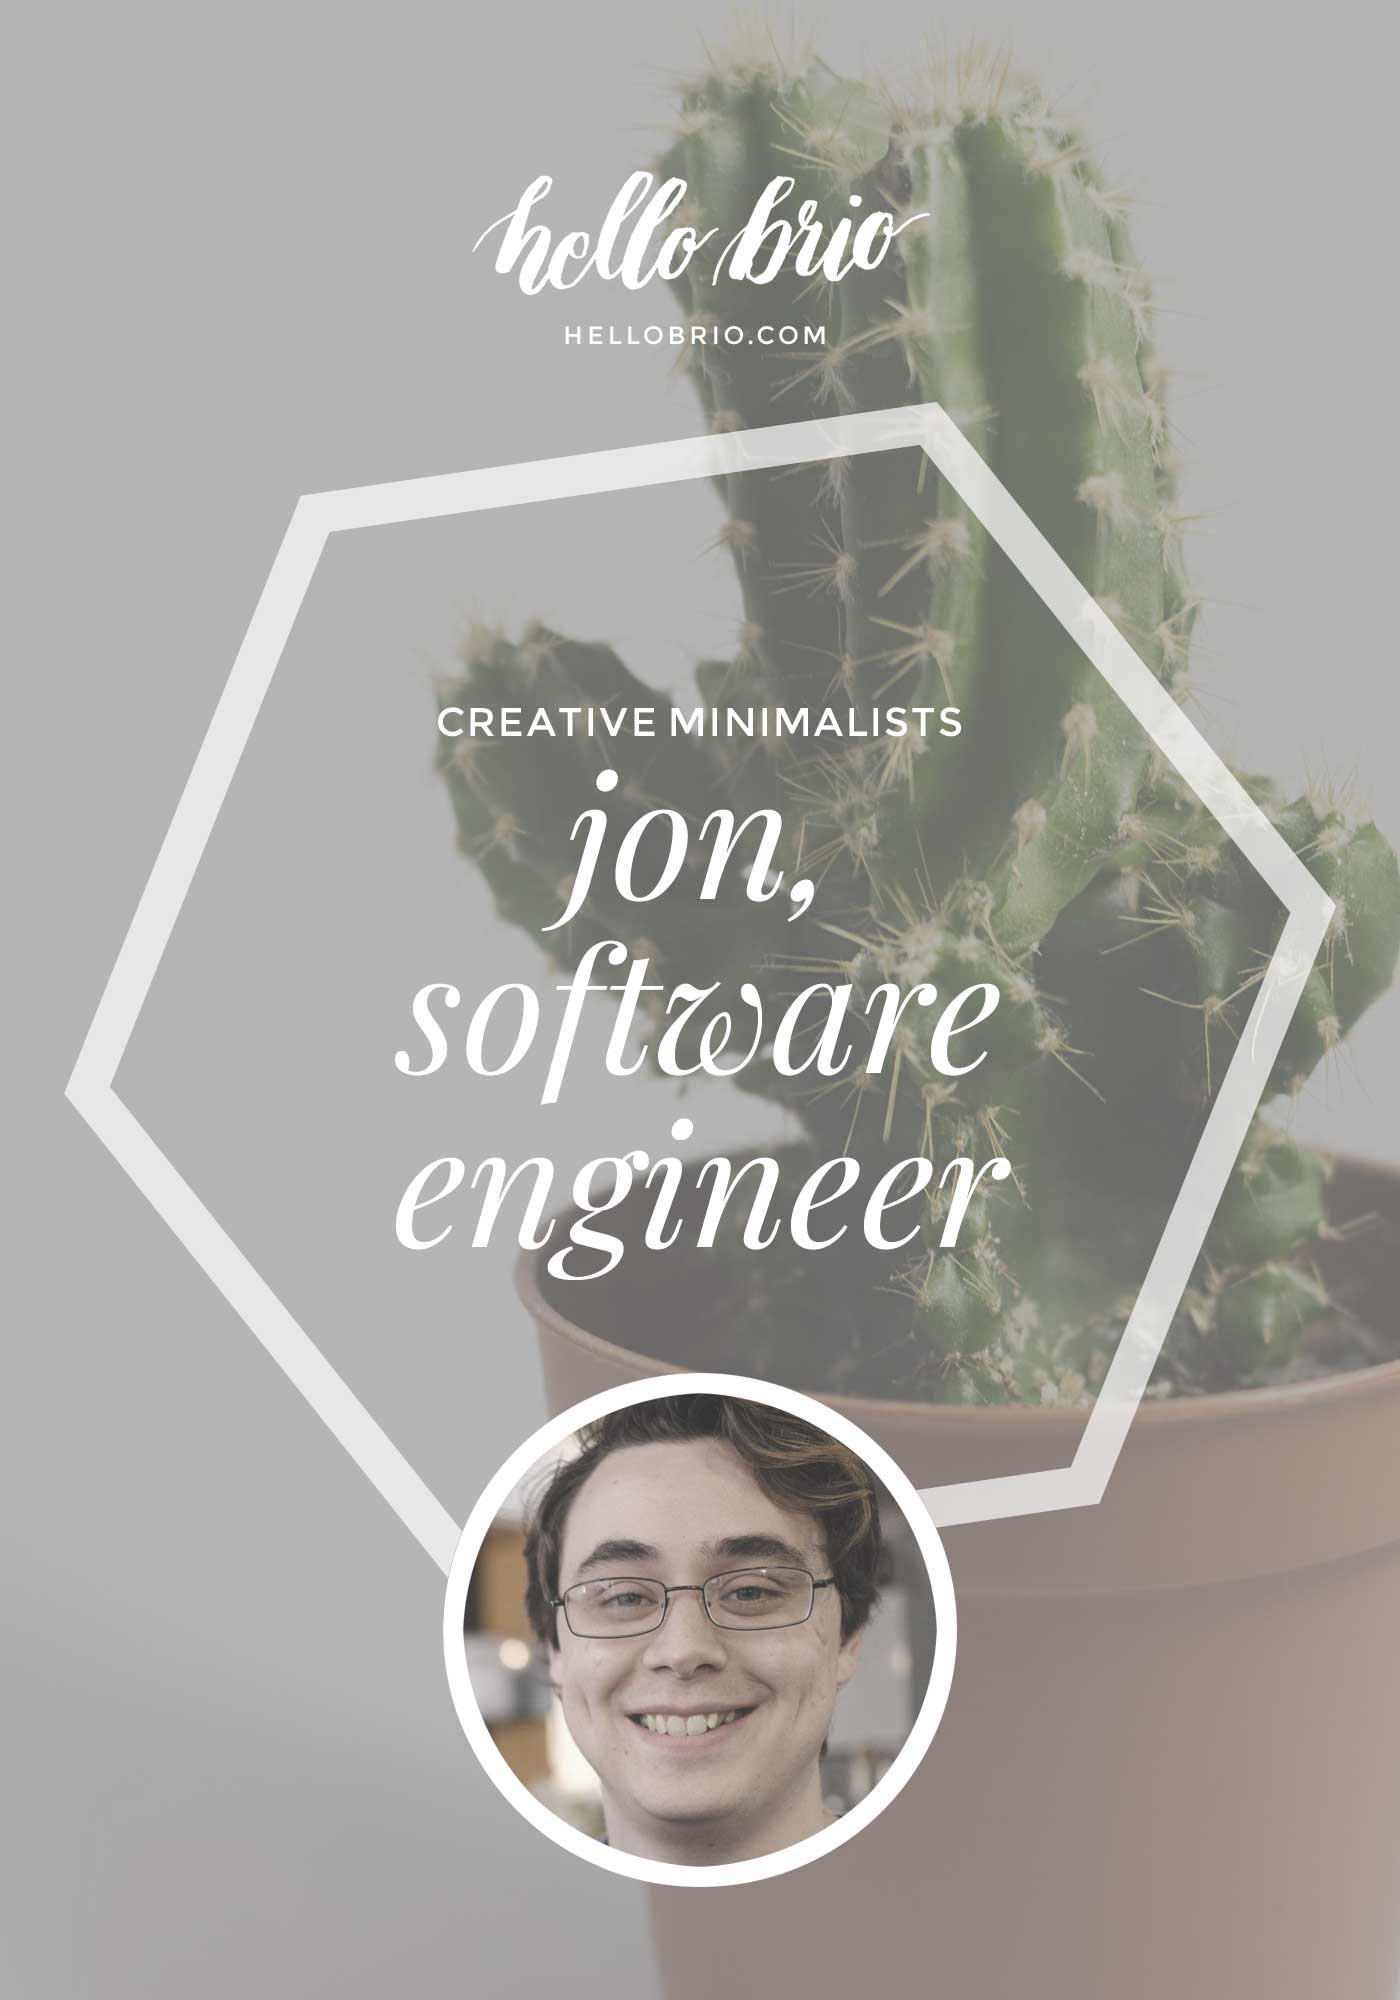 jon-thompson-software-engineer-creative-minimalist.jpg